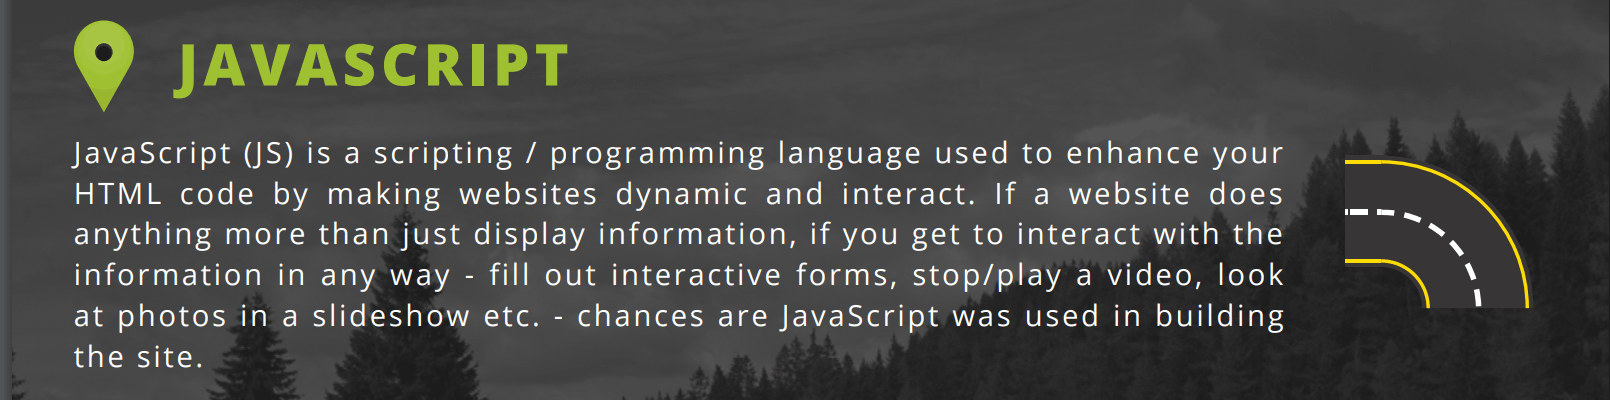 JS excerpt from roadmap